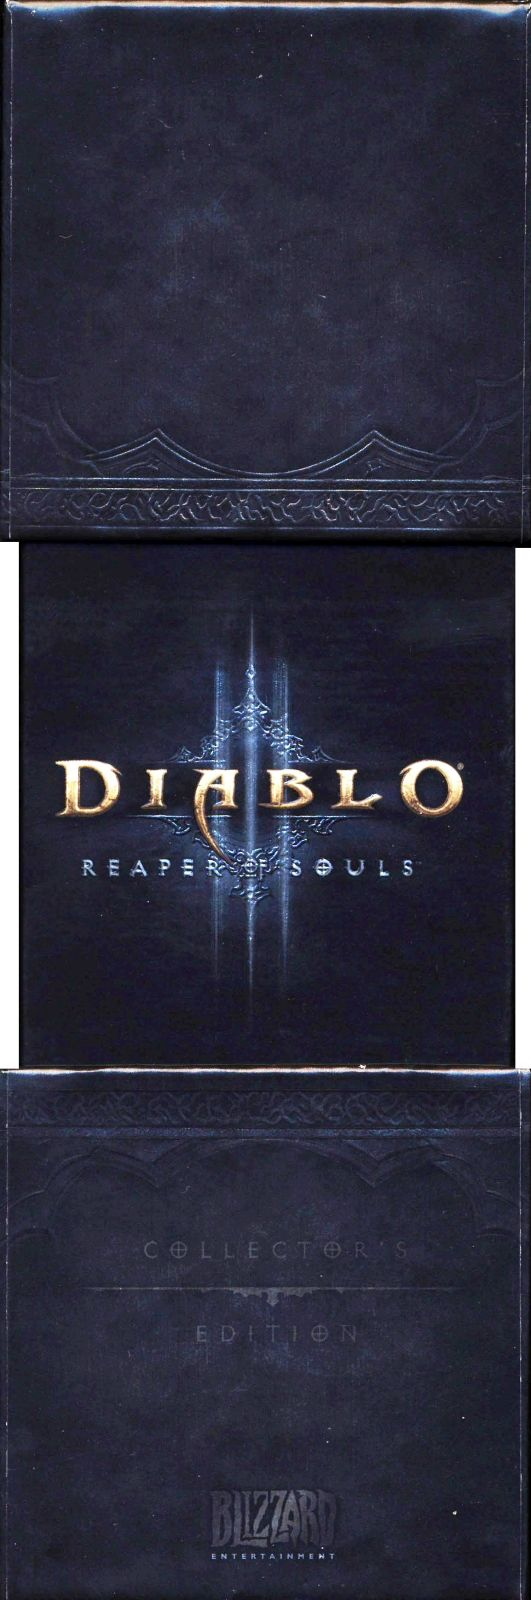 Diablo III: Reaper of Souls (Collector's Edition) Macintosh Spine/Sides Right